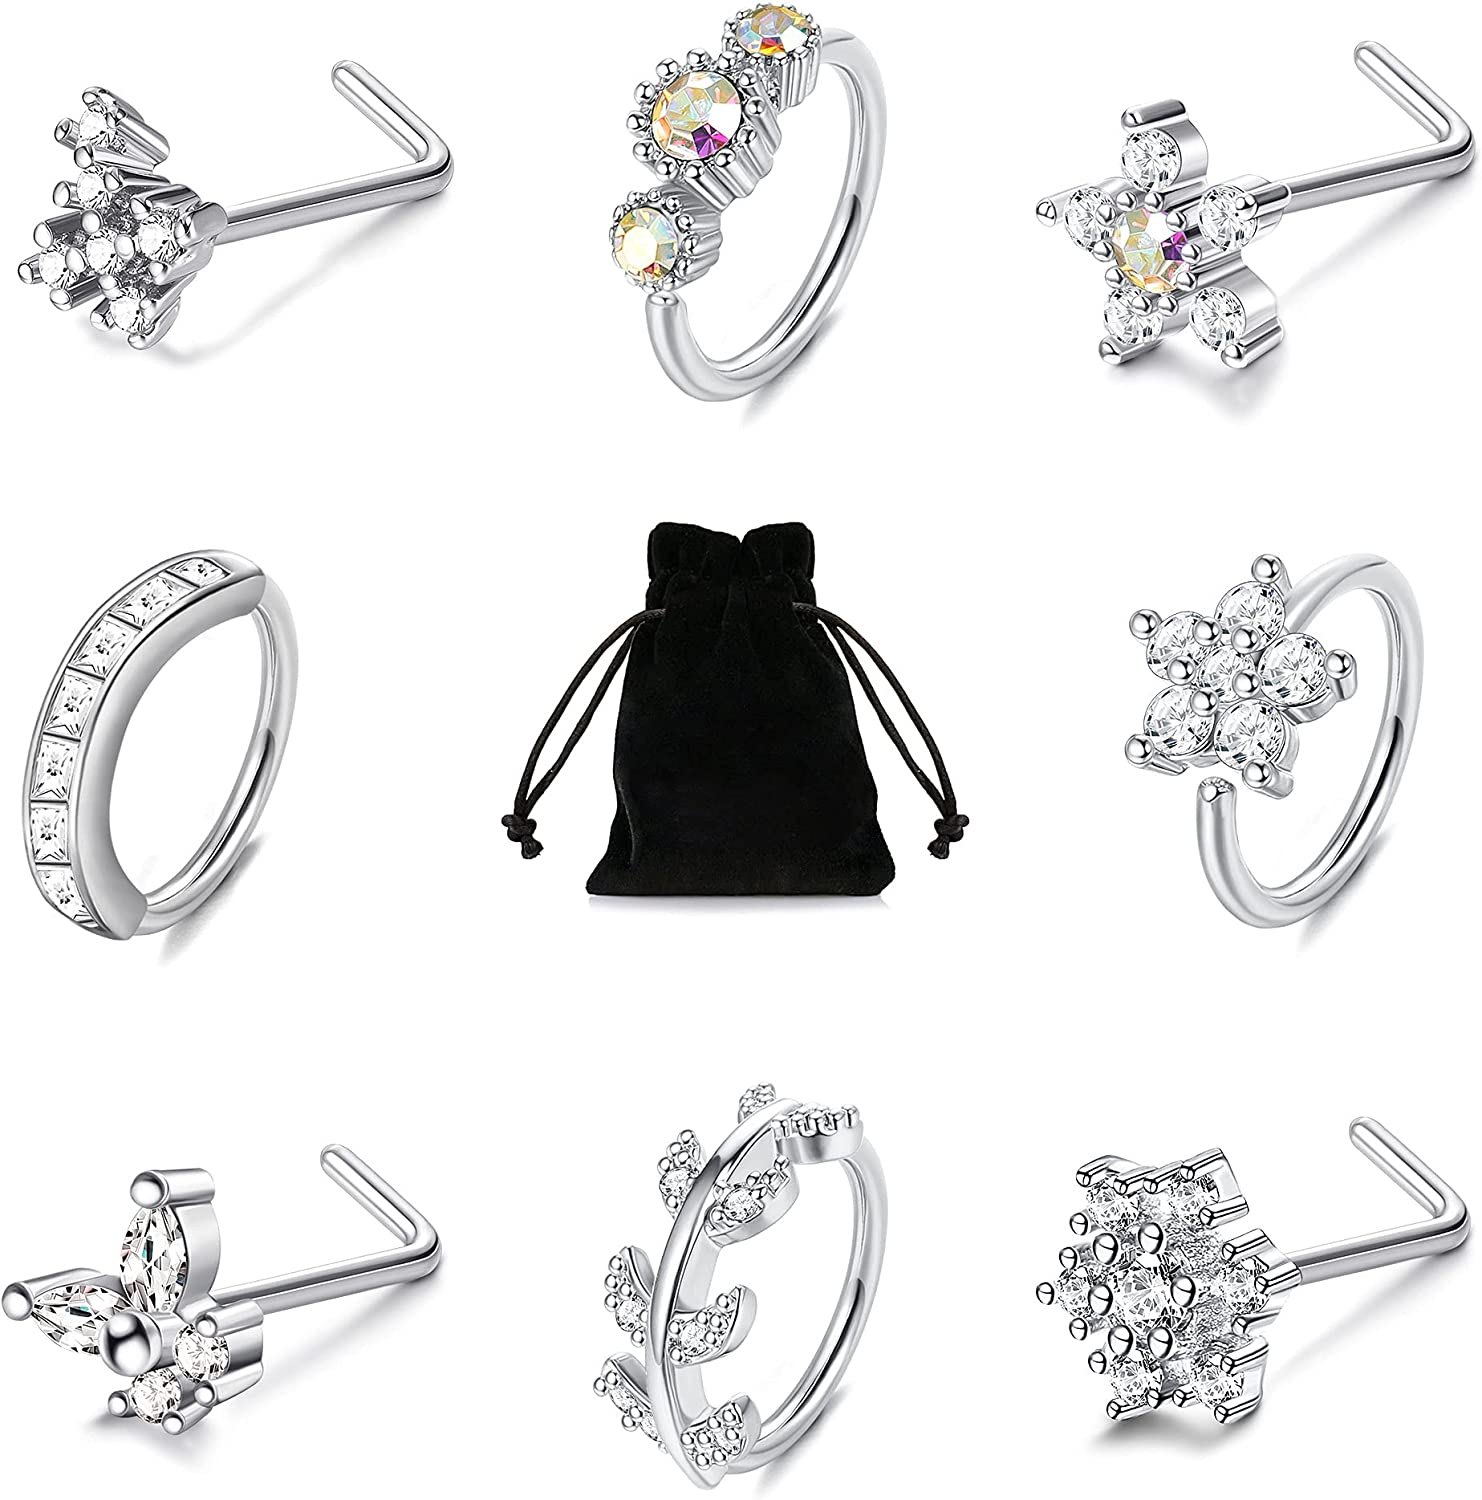 TEN MIRO 8Pcs 20G Nose Rings Hoop L Shaped Nose Rings Stud Stainless Steel CZ Cartilage Earring Flower Snowflake Butterfly Nose Piercing Jewelry For Women